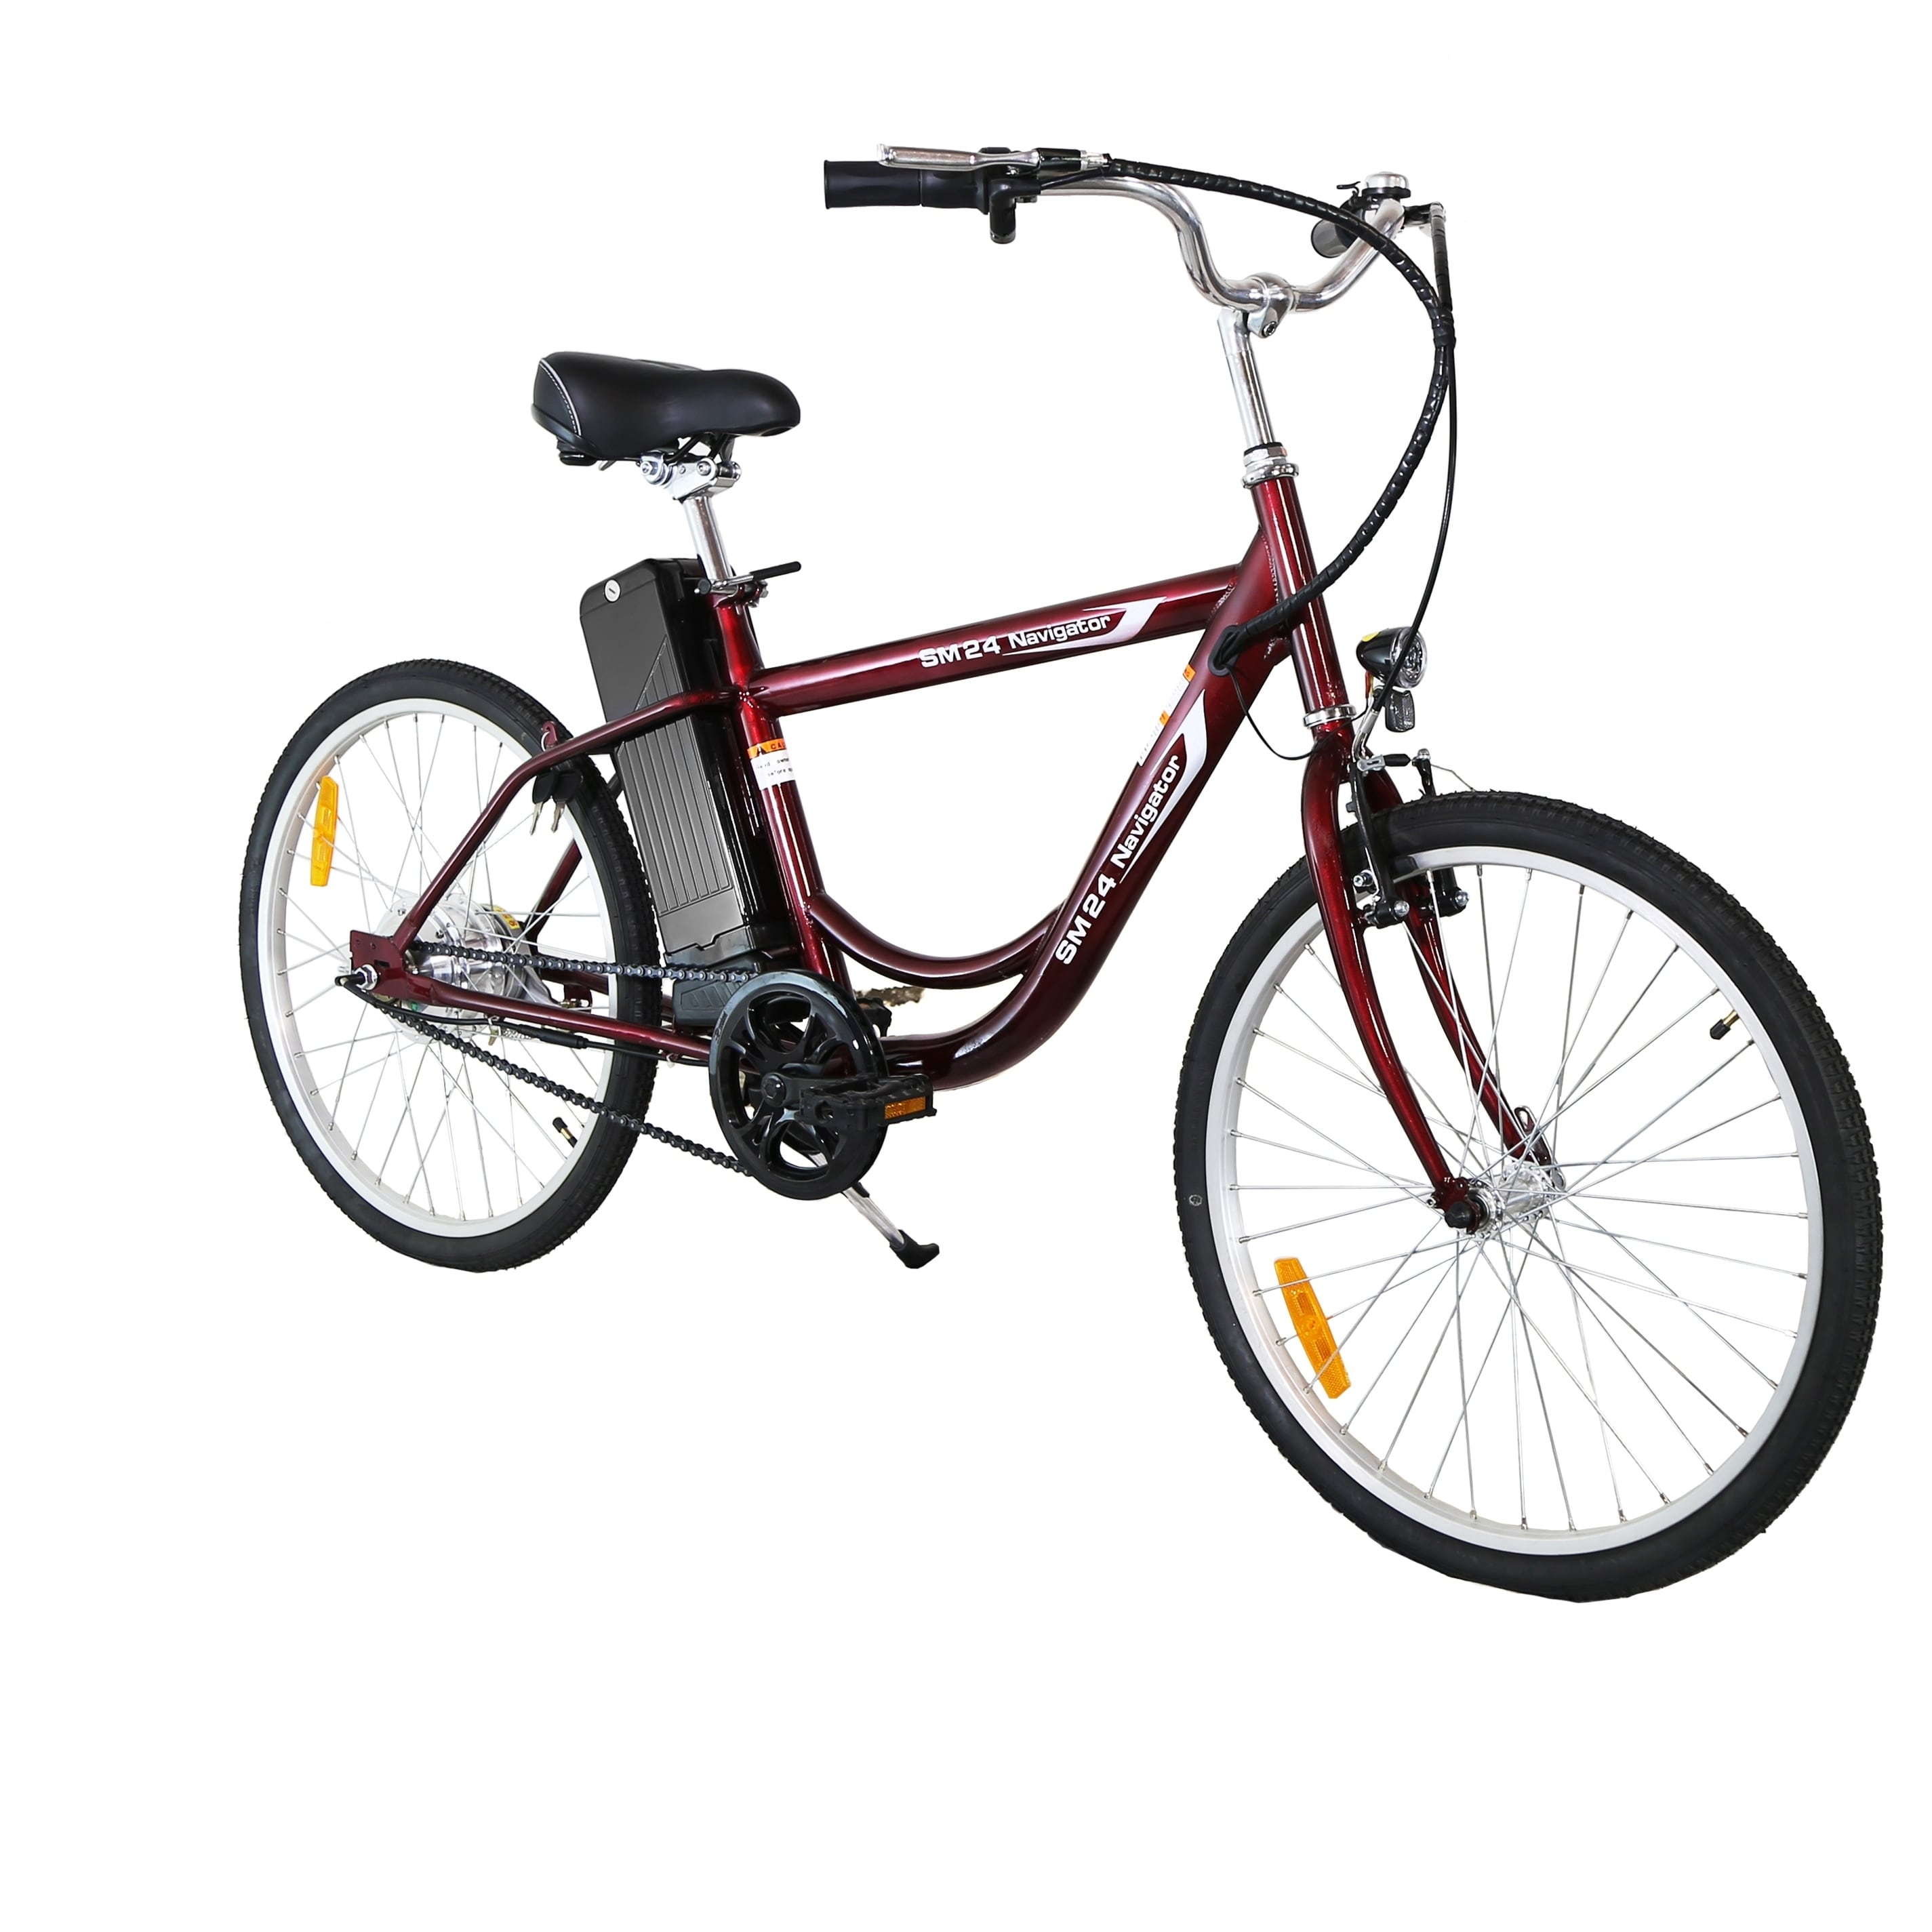 Yukon Trail Navigator Electric Bike On Free Shipping Today 9355454